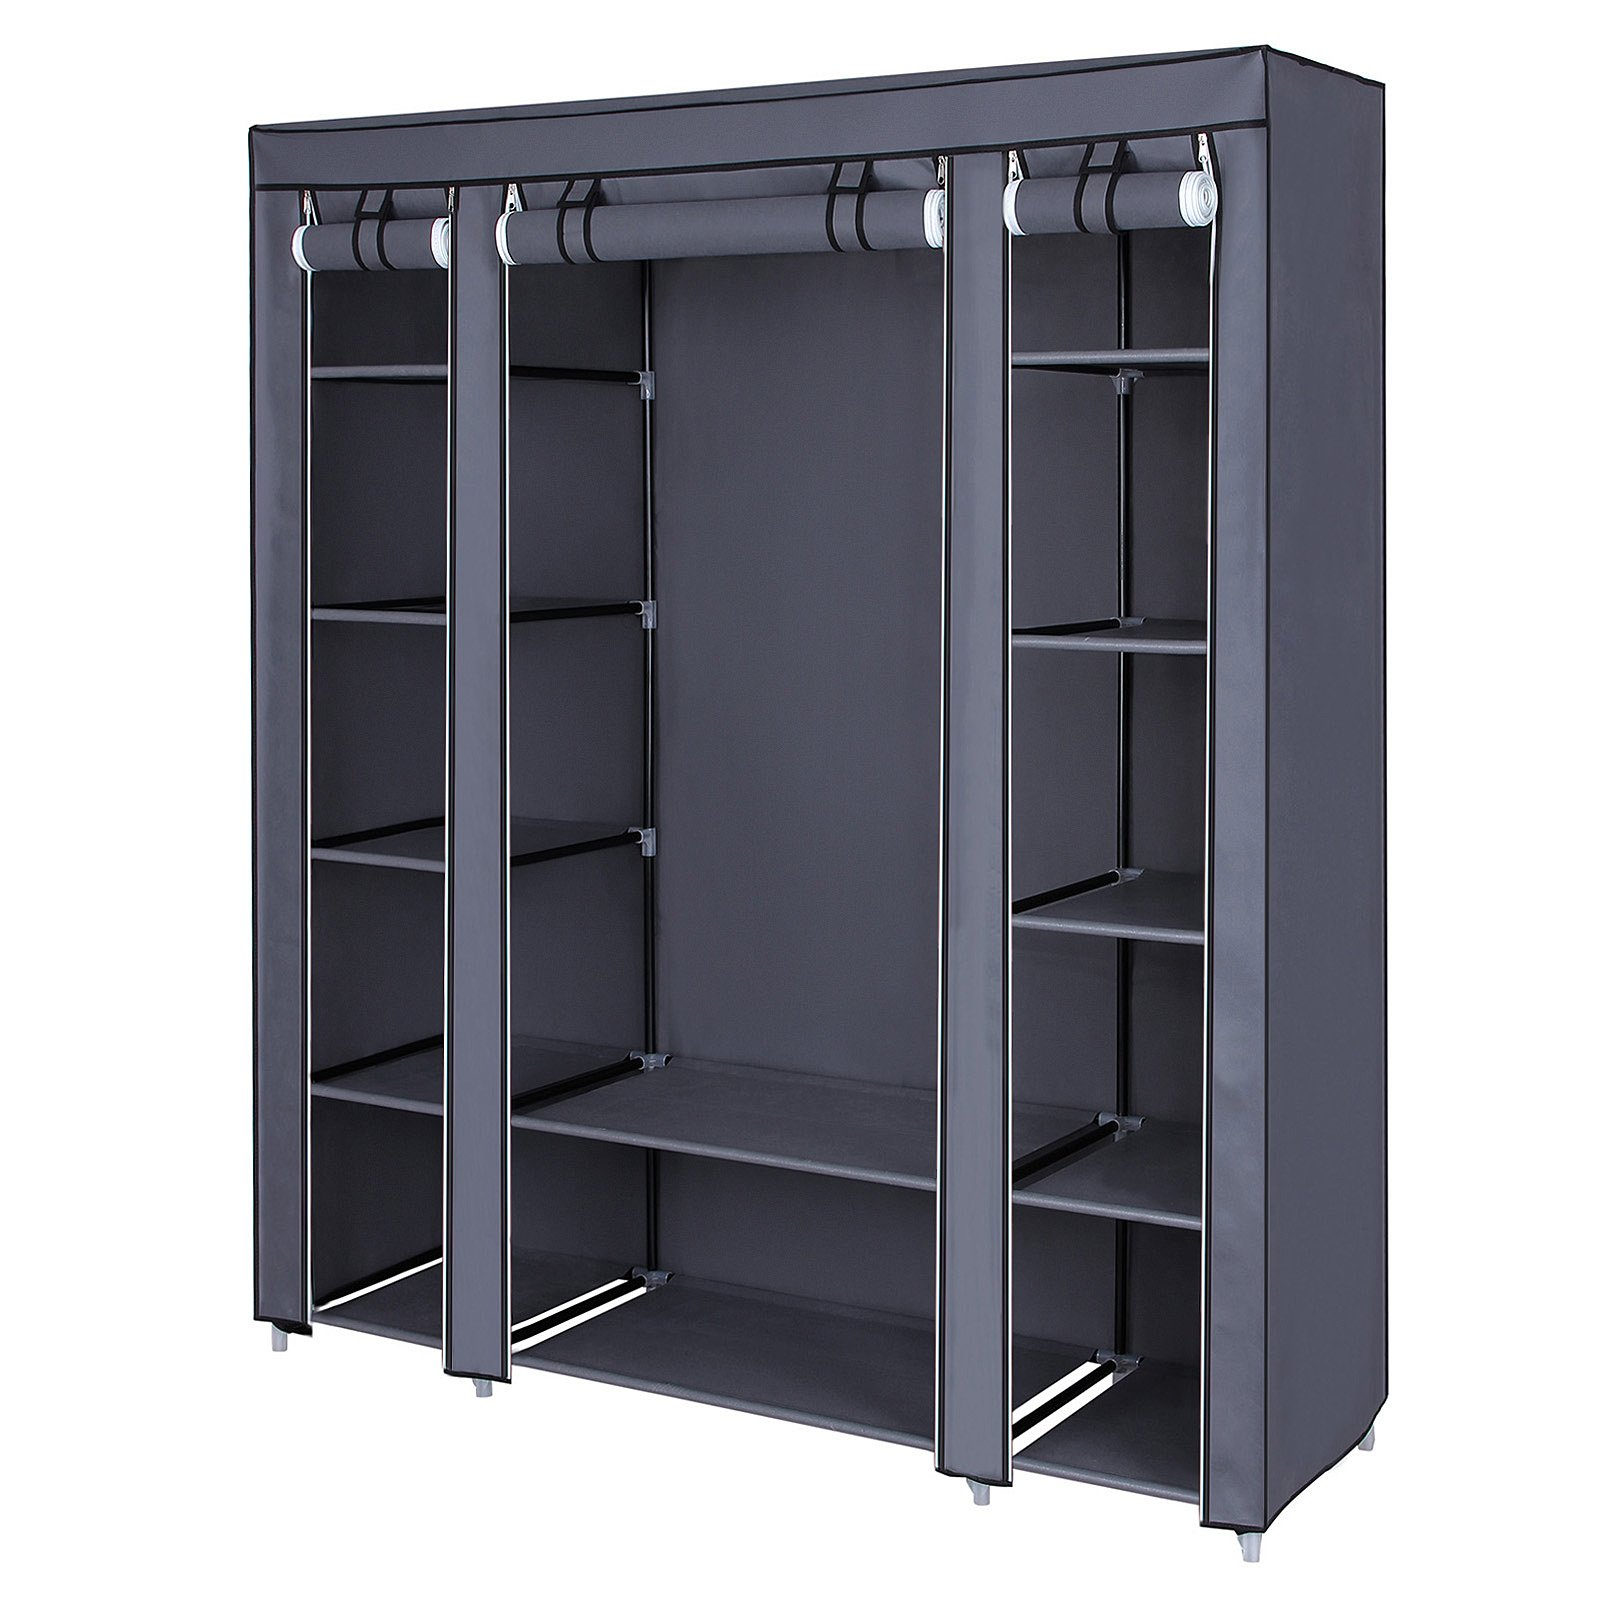 SONGMICS 59'' Closet Organizer Wardrobe Closet Portable Closet Shelves, Closet Storage Organizer with Non-Woven Fabric, Quick and Easy to Assemble, Extra Strong and Durable, Gray ULSF03G